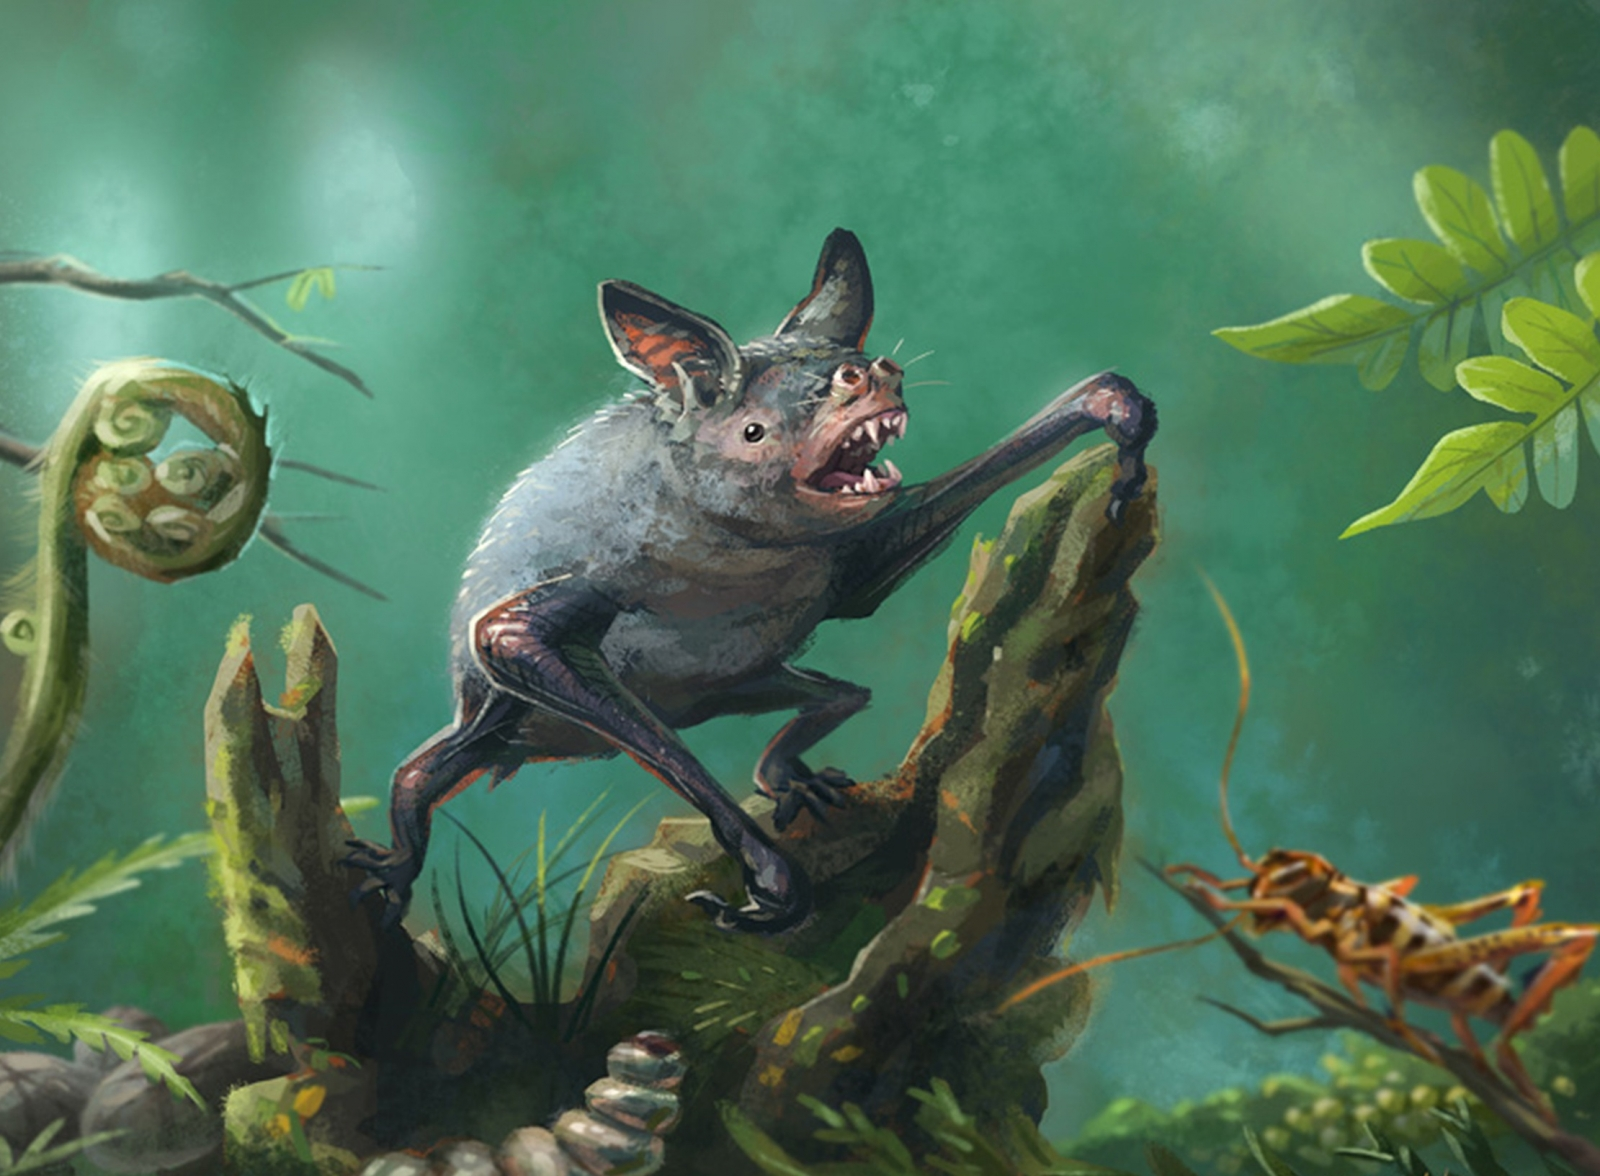 Giant, ancient bat discovered in New Zealand could walk on all fours